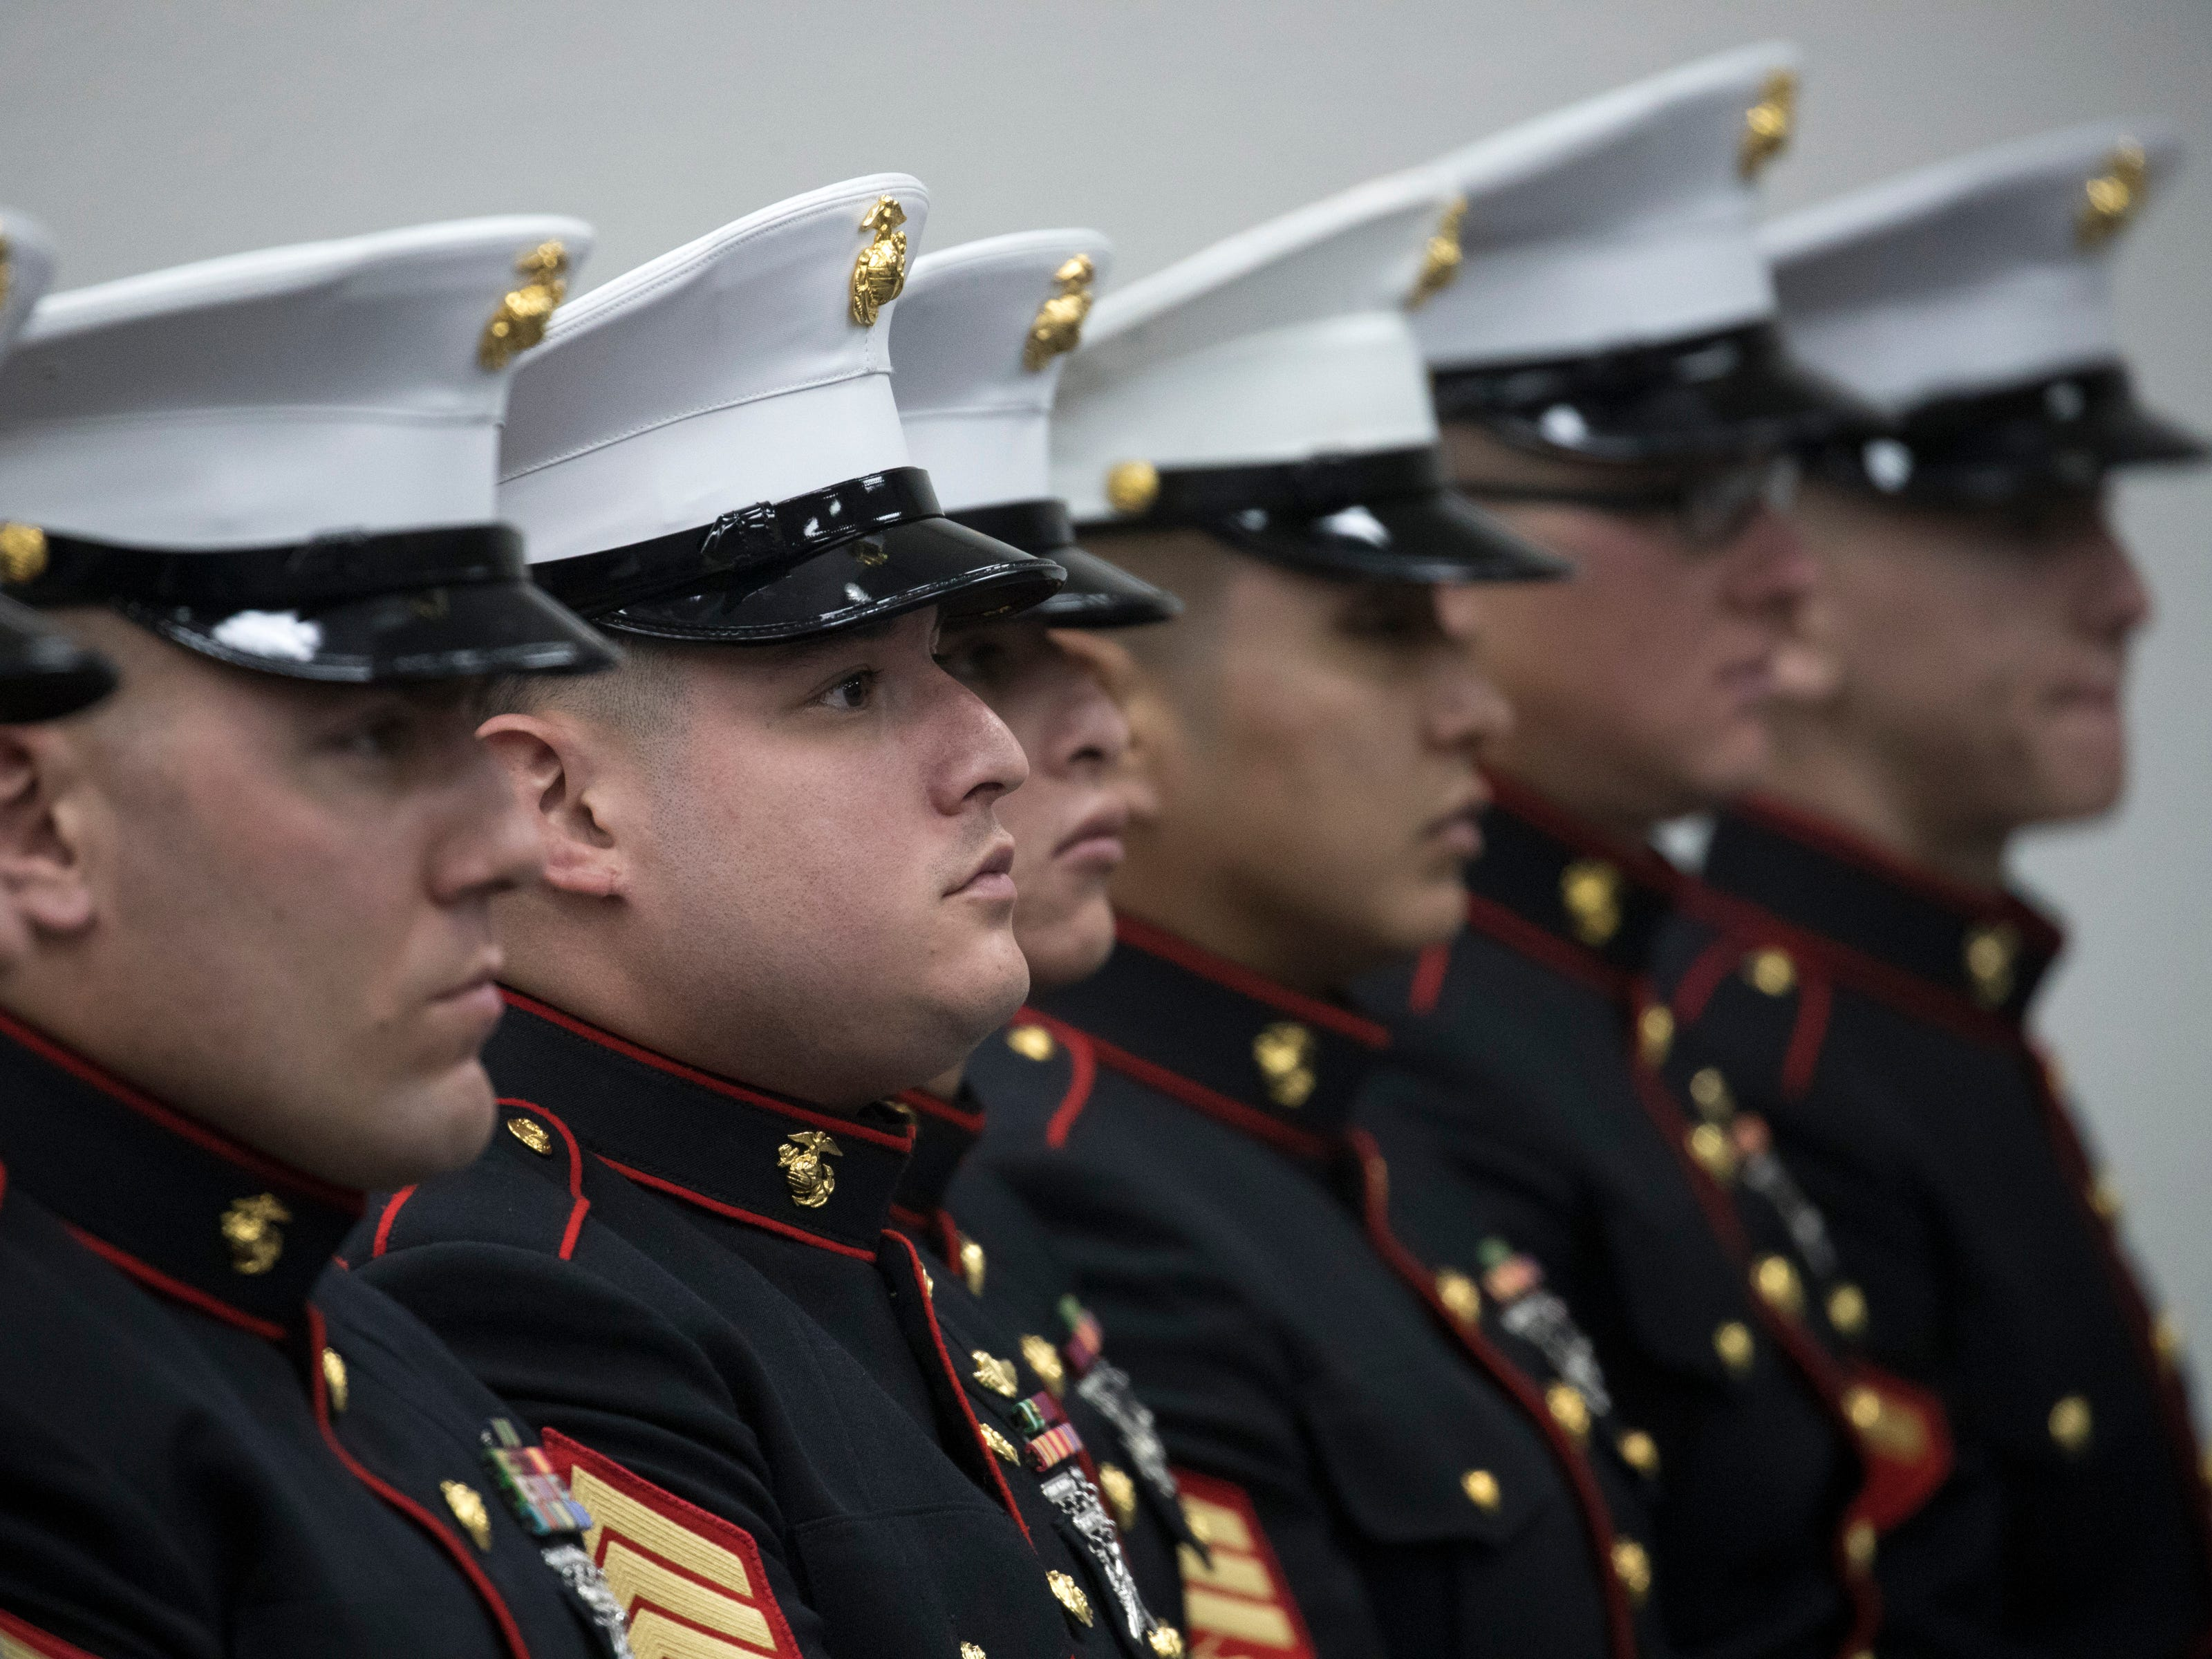 Marines during the funeral service for Navajo Code Talker Fleming Begaye Sr. on May 17, 2019, at the Potter's House Christian Center in Chinle, Ariz.